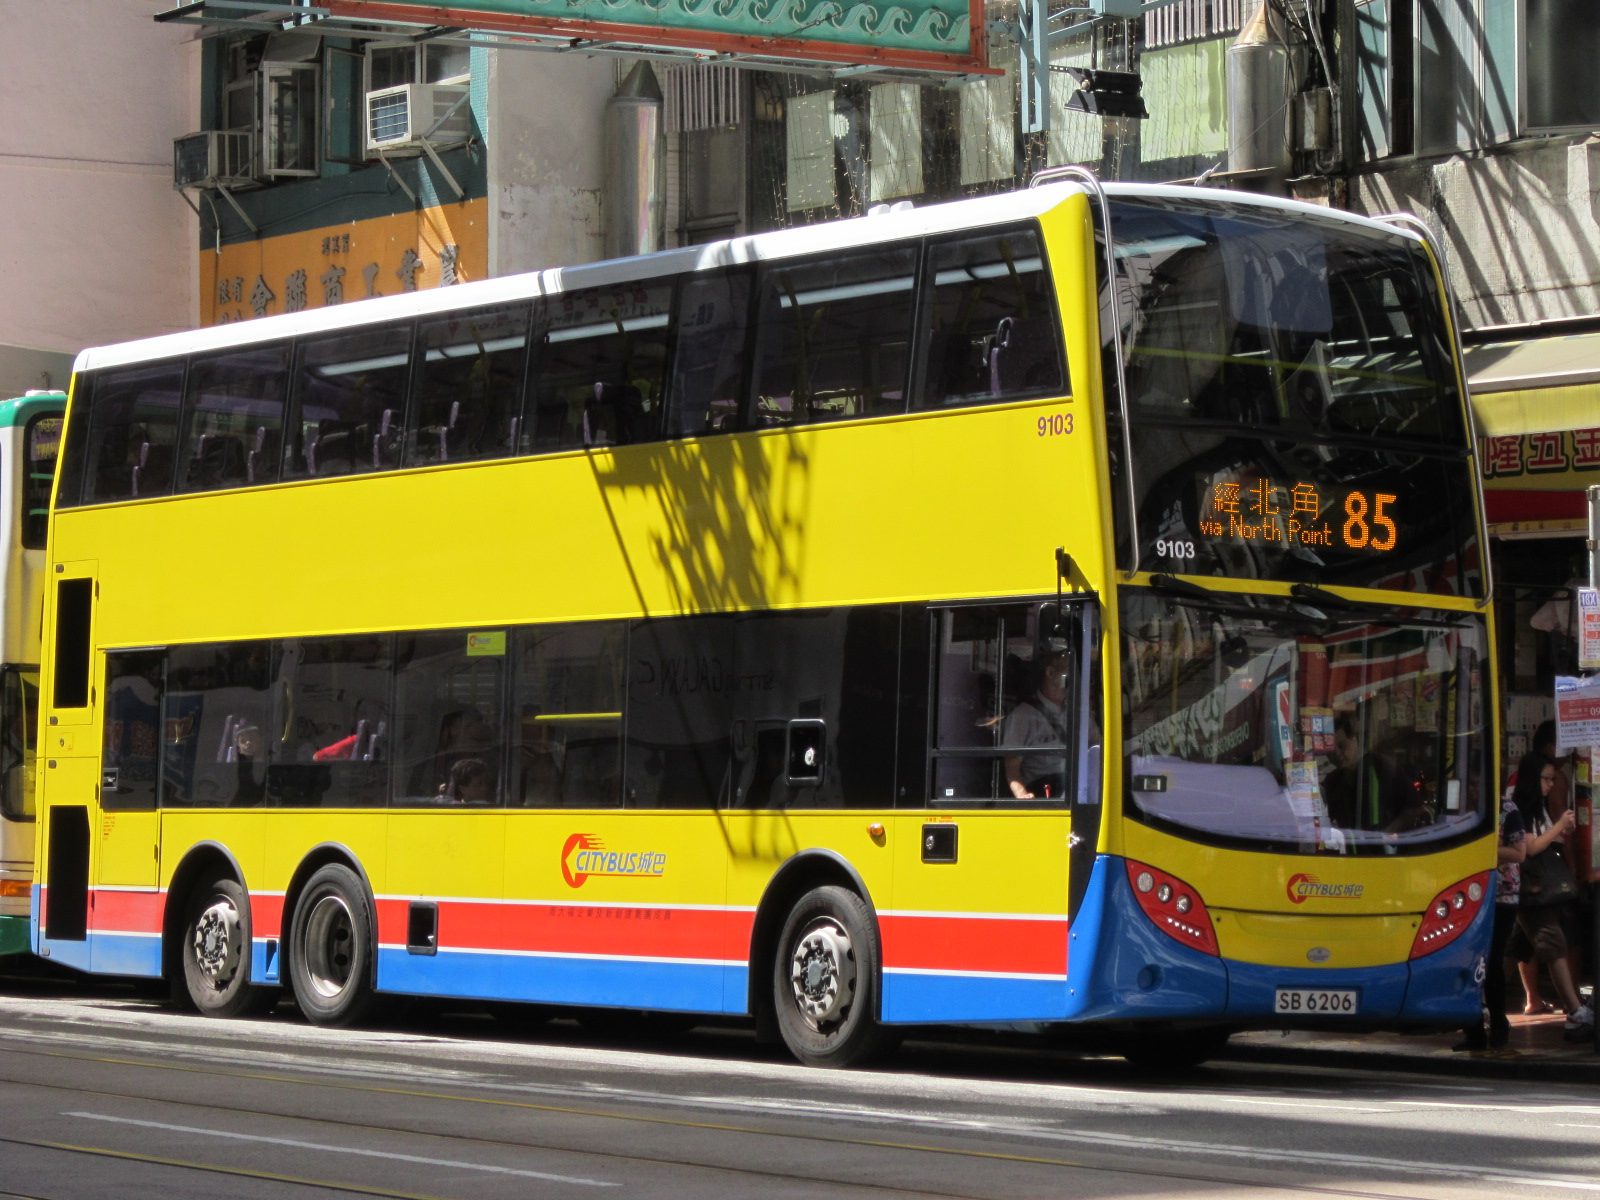 85 wikiwand for 85 bus timetable